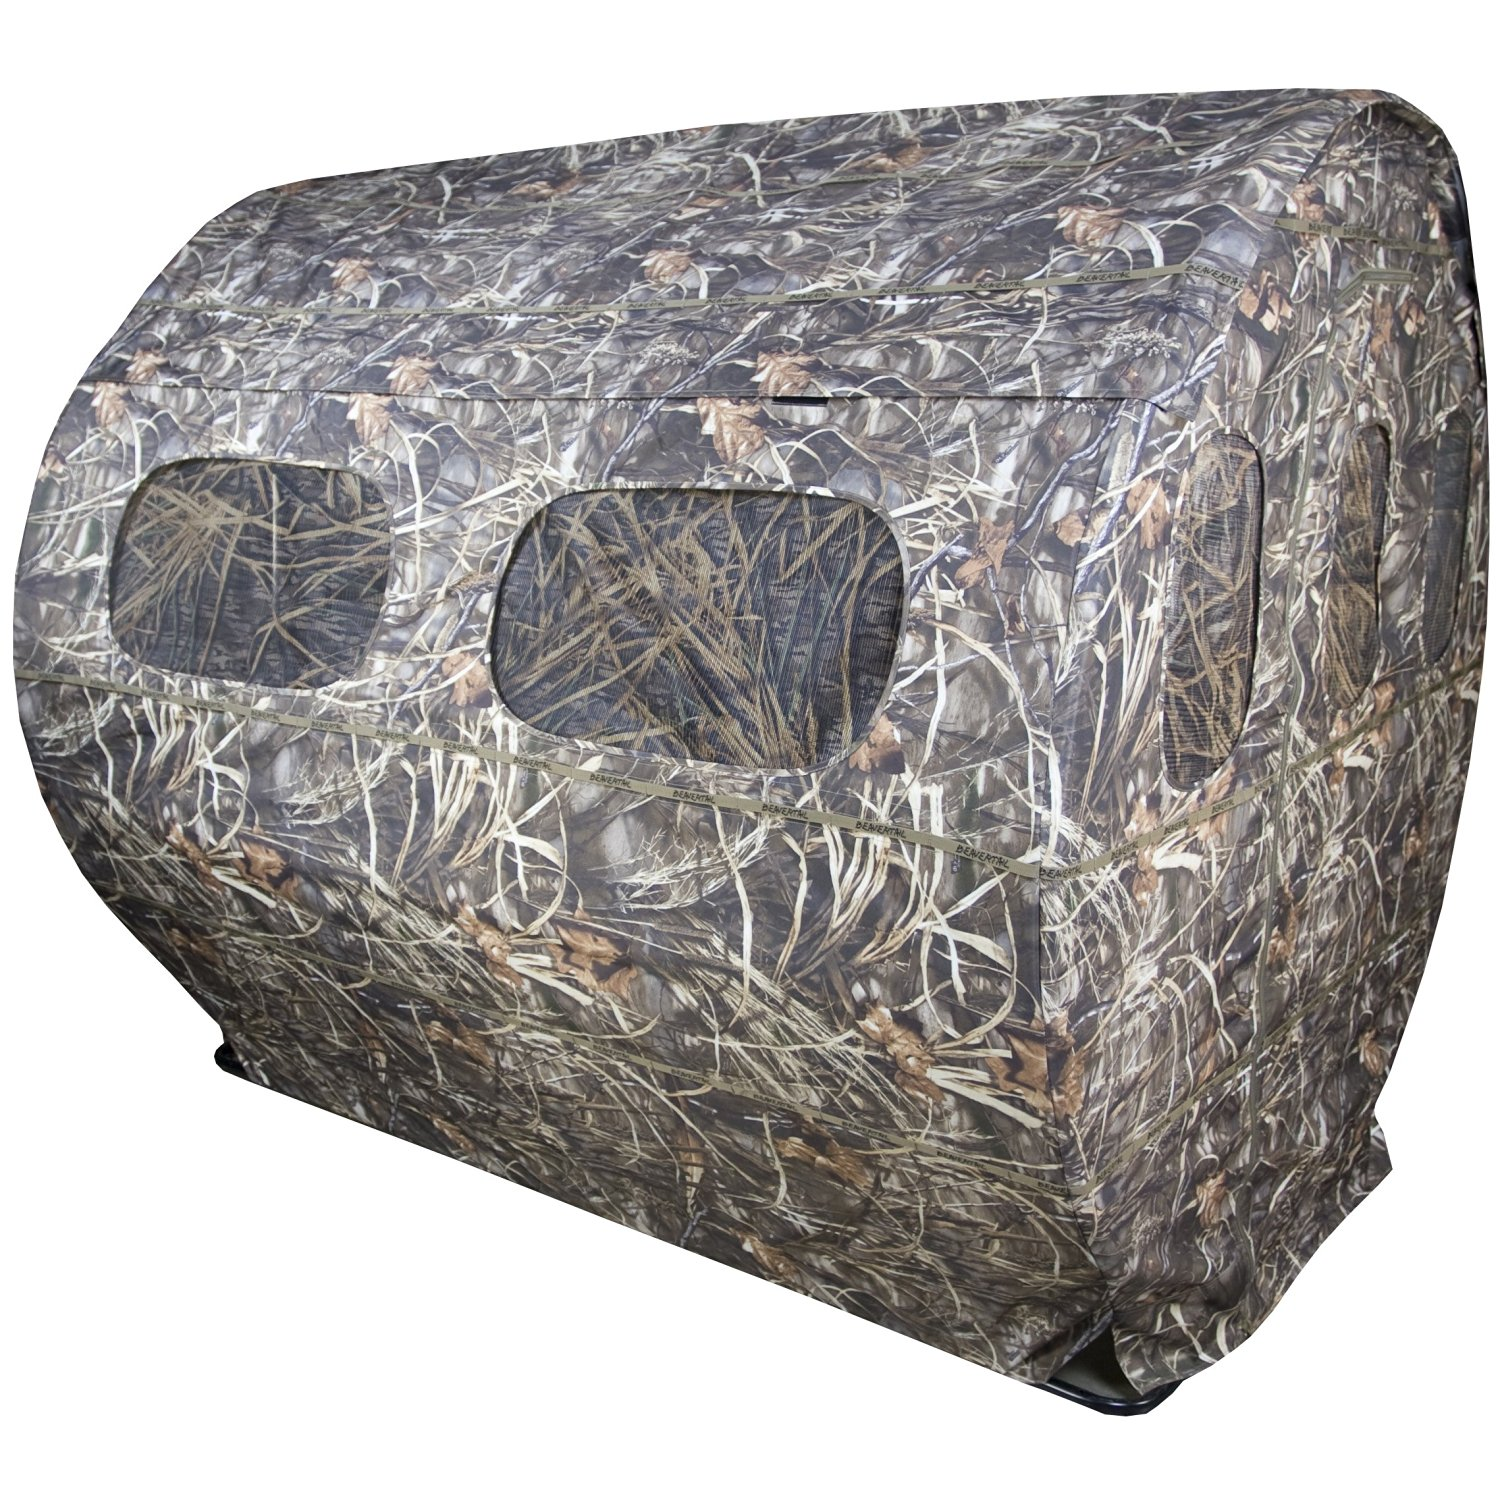 quick index ts up blinds paneling blind palm portable natural duck thatch product at waterfowl set leaf